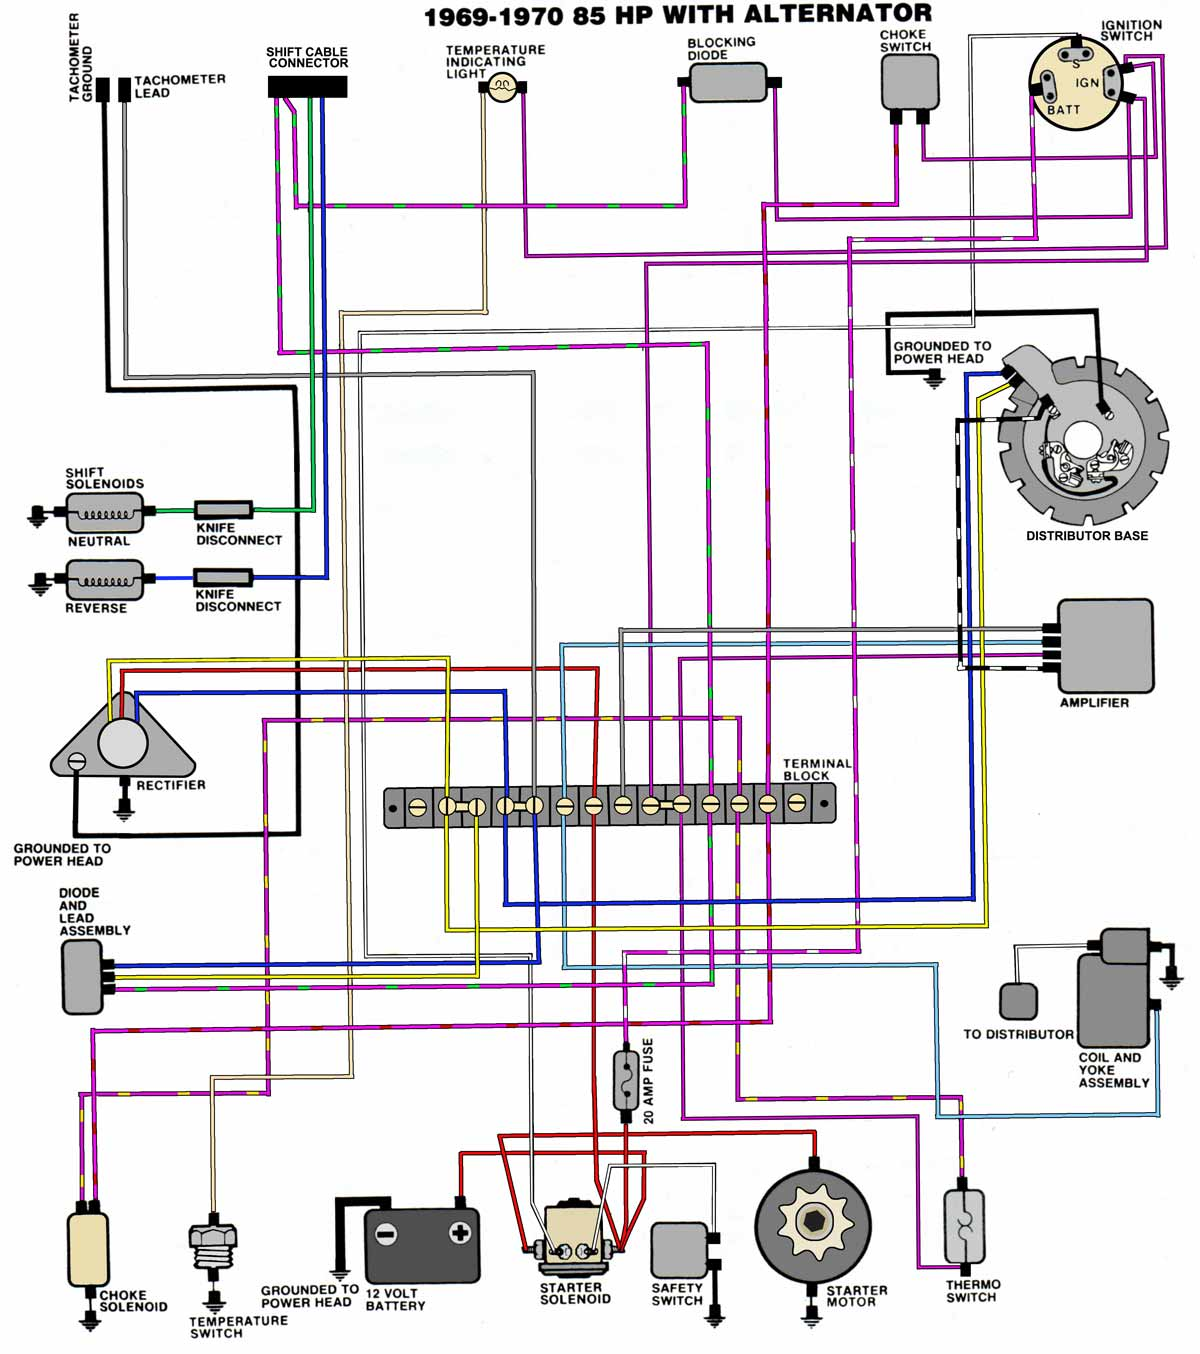 Omc Key Switch Diagram | Wiring Diagram Omc Starter Switch Wiring Diagram on